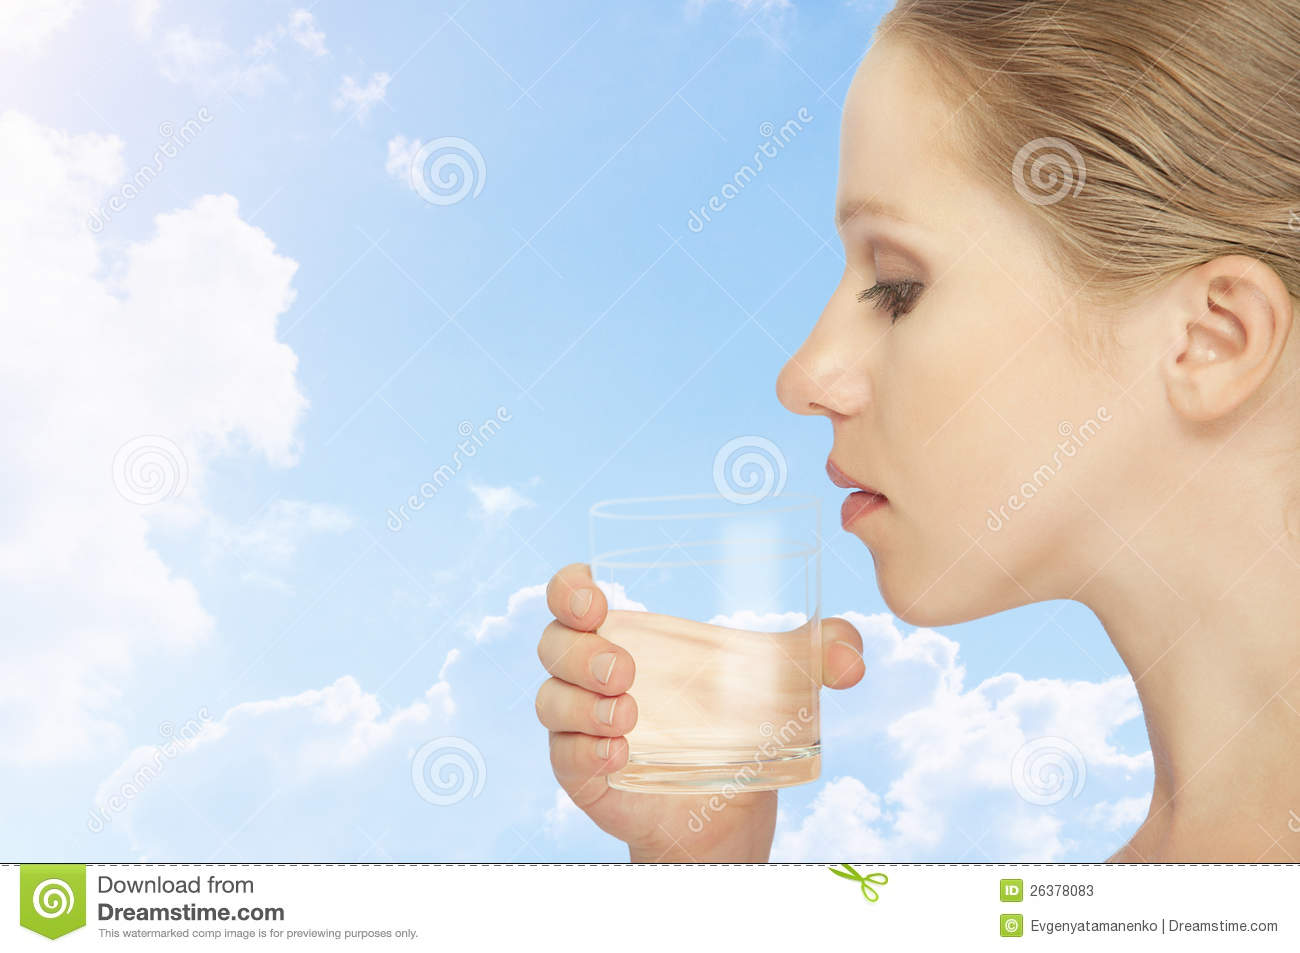 healthy young woman drinking glass of mineral water stock photo 27715830. Black Bedroom Furniture Sets. Home Design Ideas